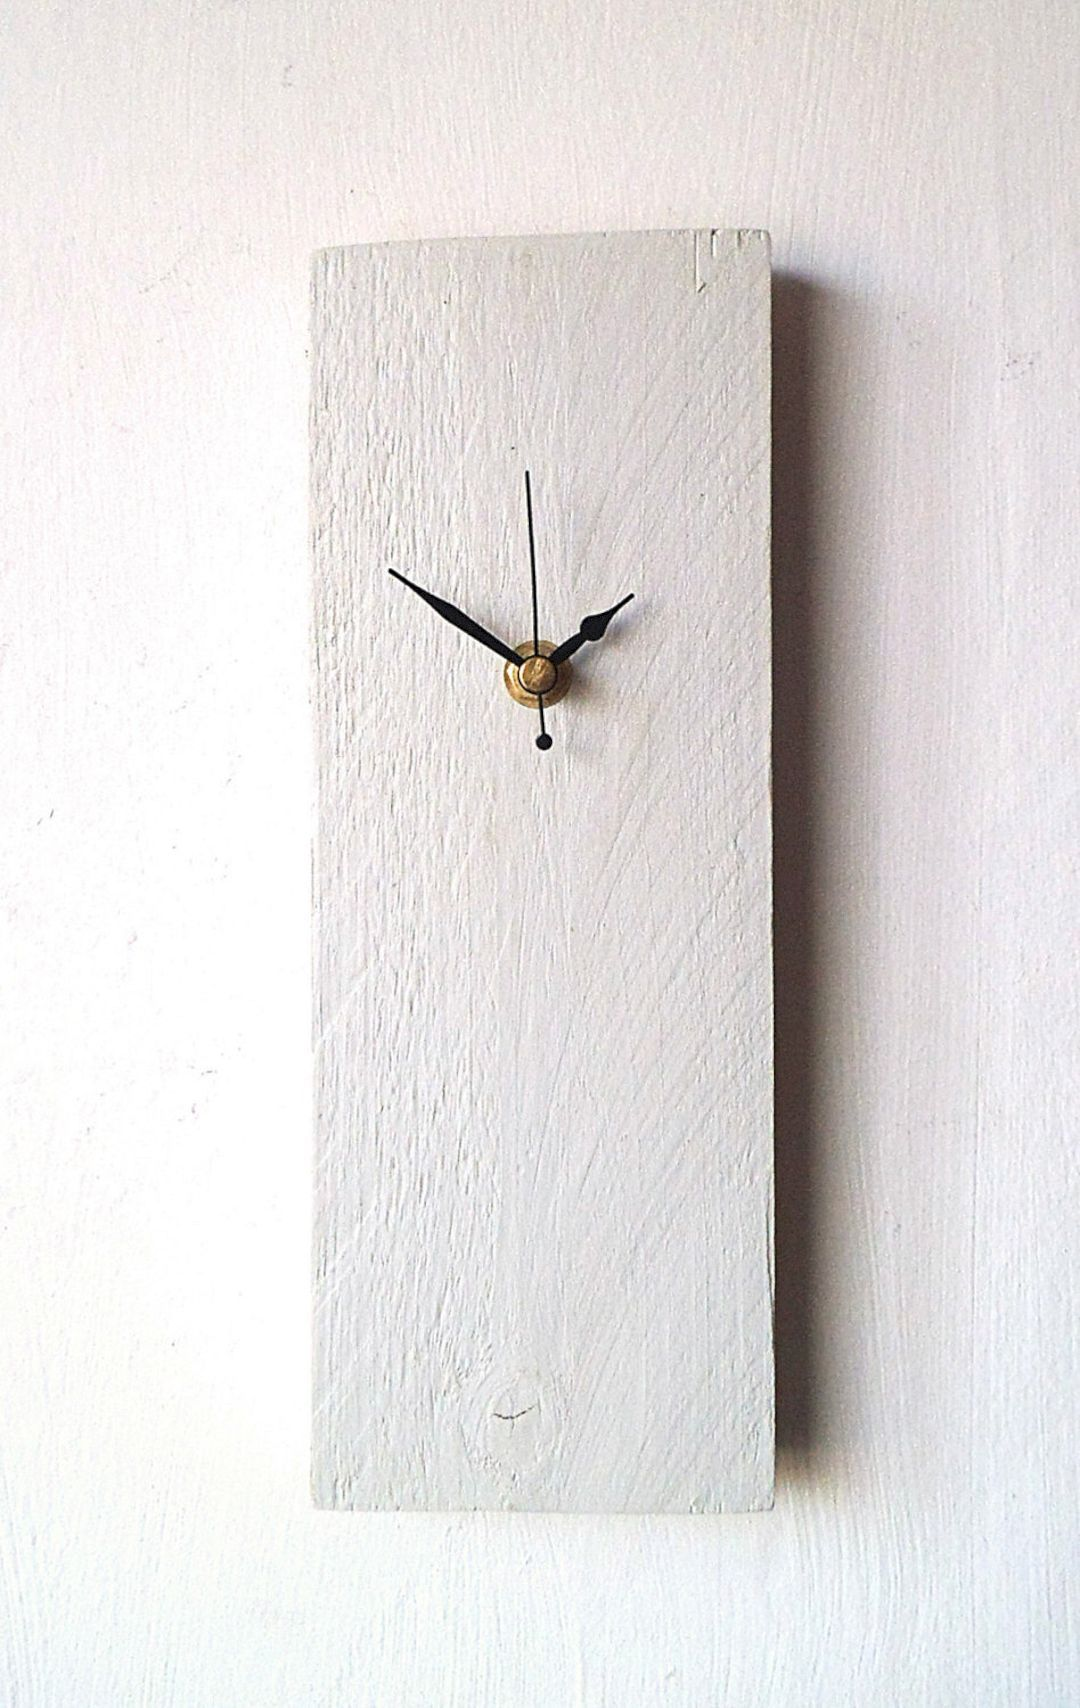 Highridge House A New House With A Long Concrete Wall And Vertical Timbers Diy Clock Wall Wall Clock Modern Wall Clock Design